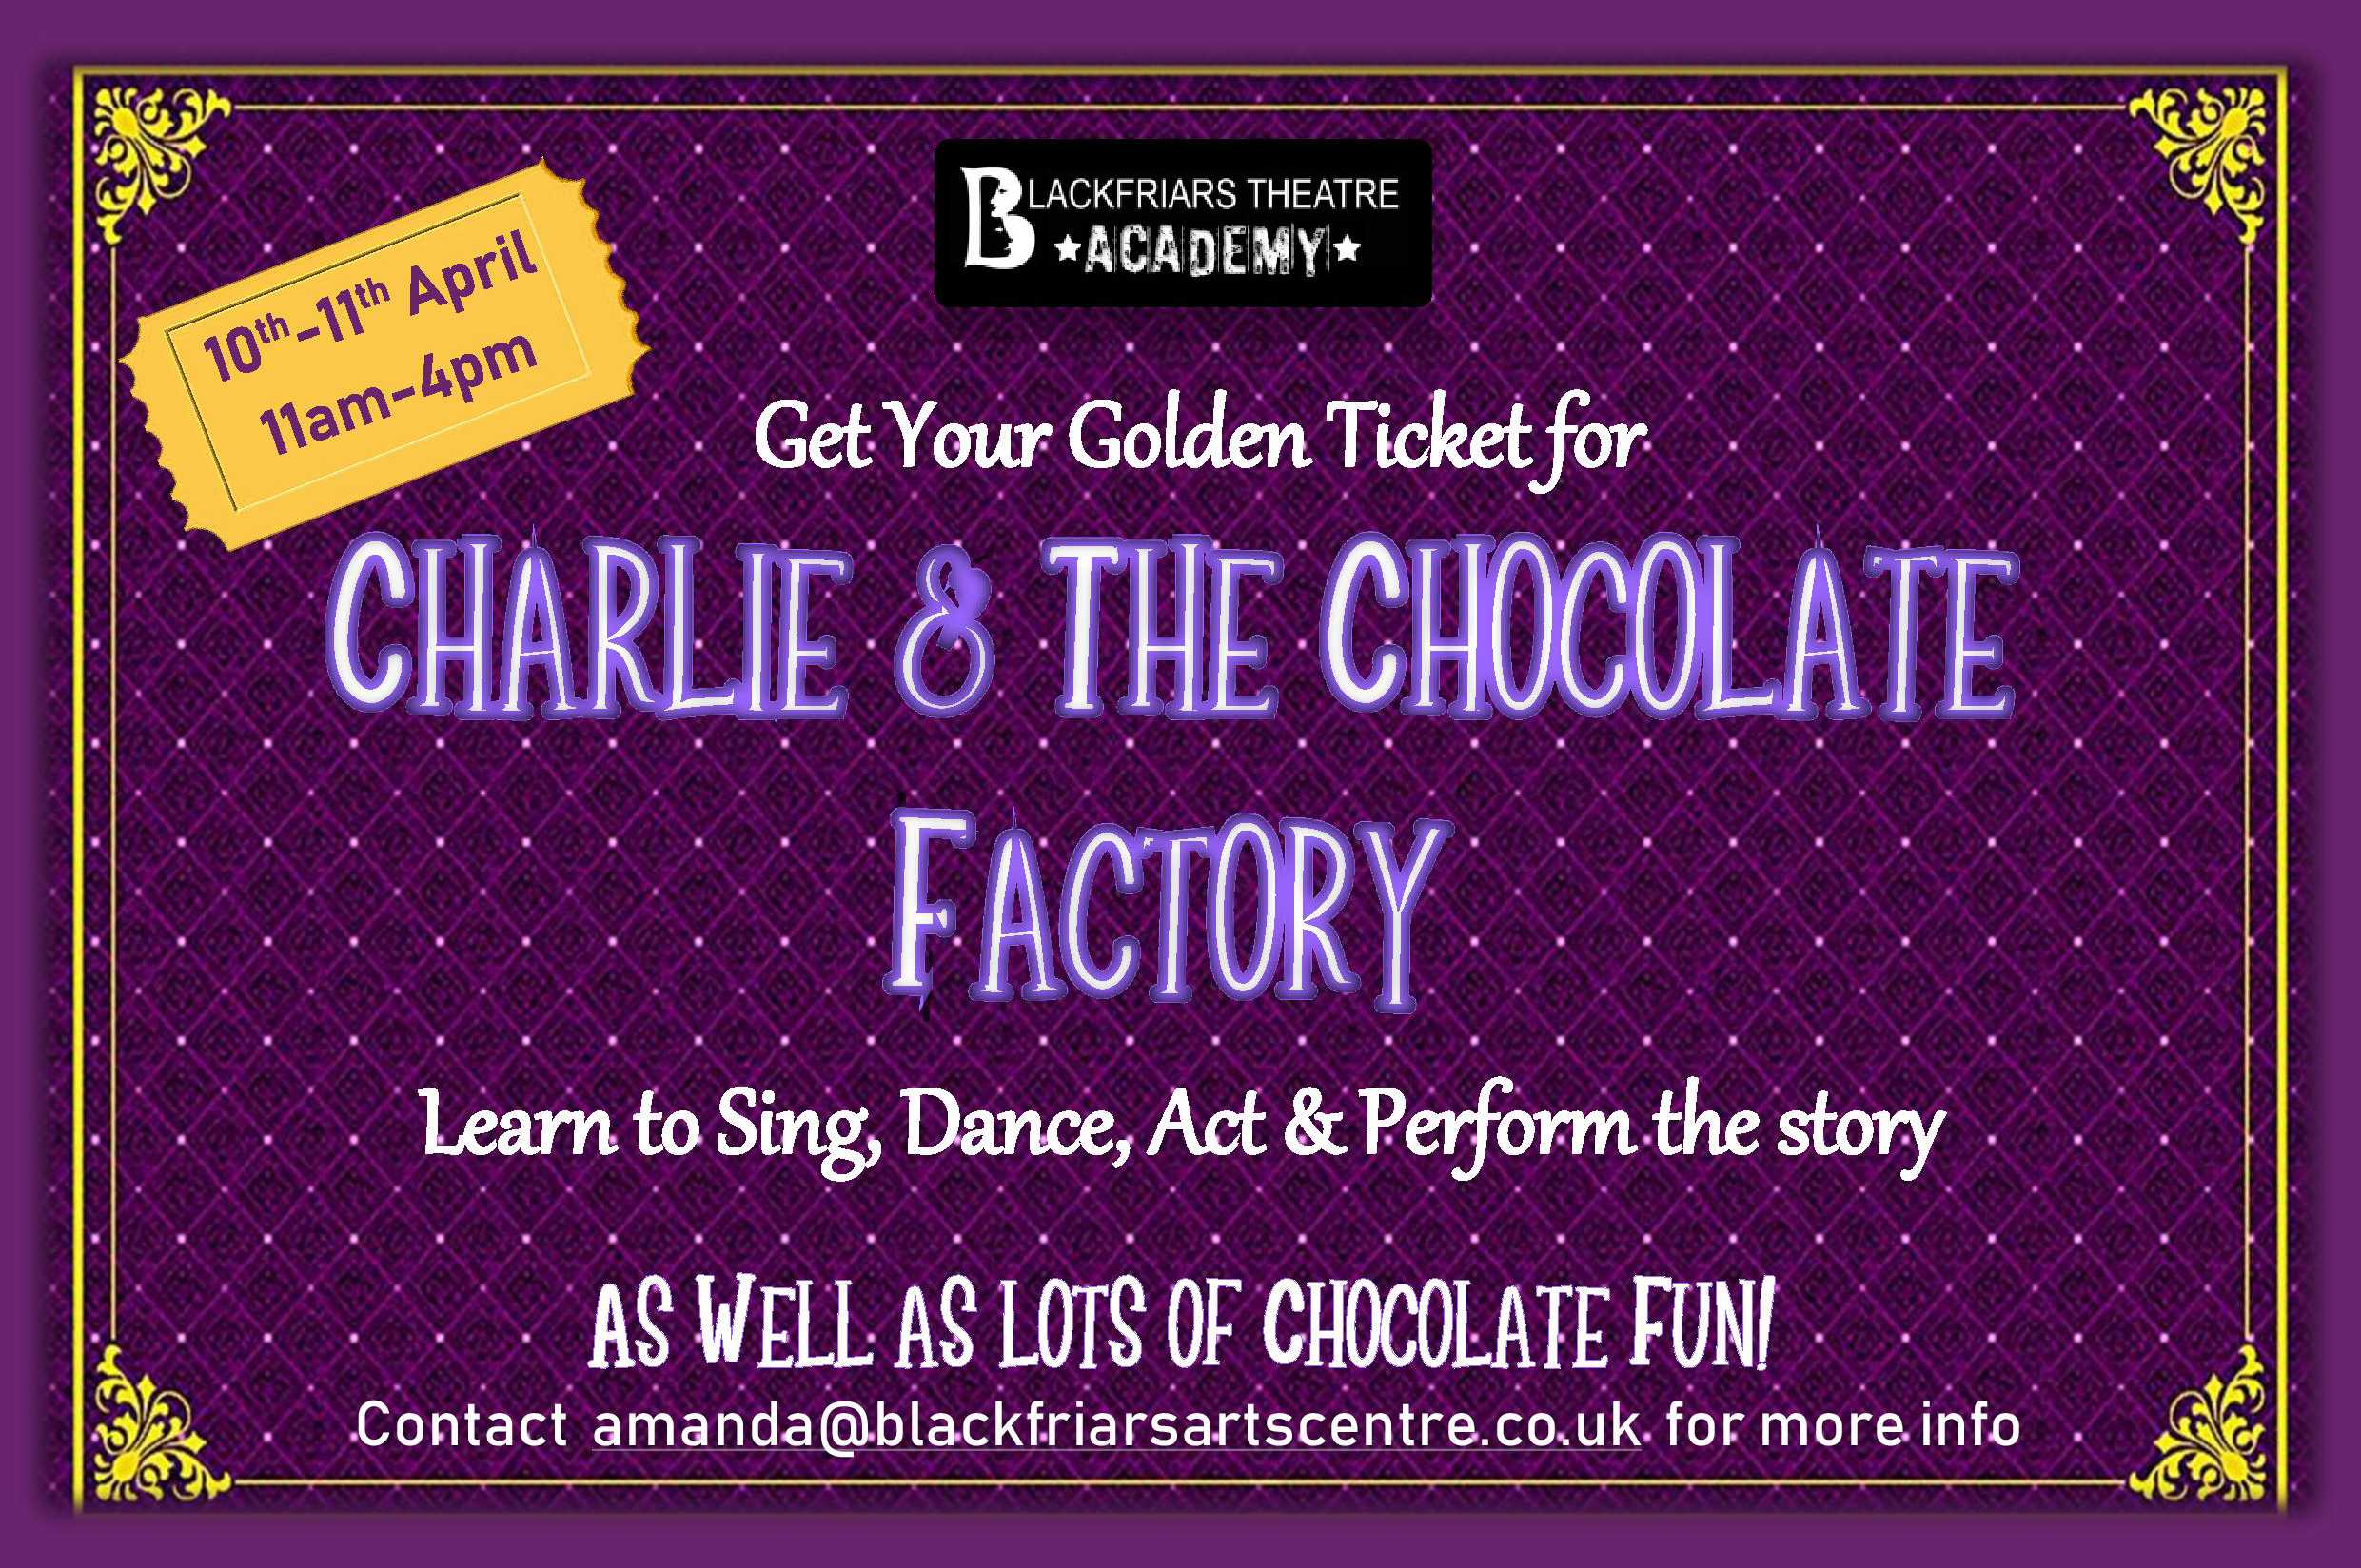 Easter Workshop 2019 - Blackfriars Theatre Academy